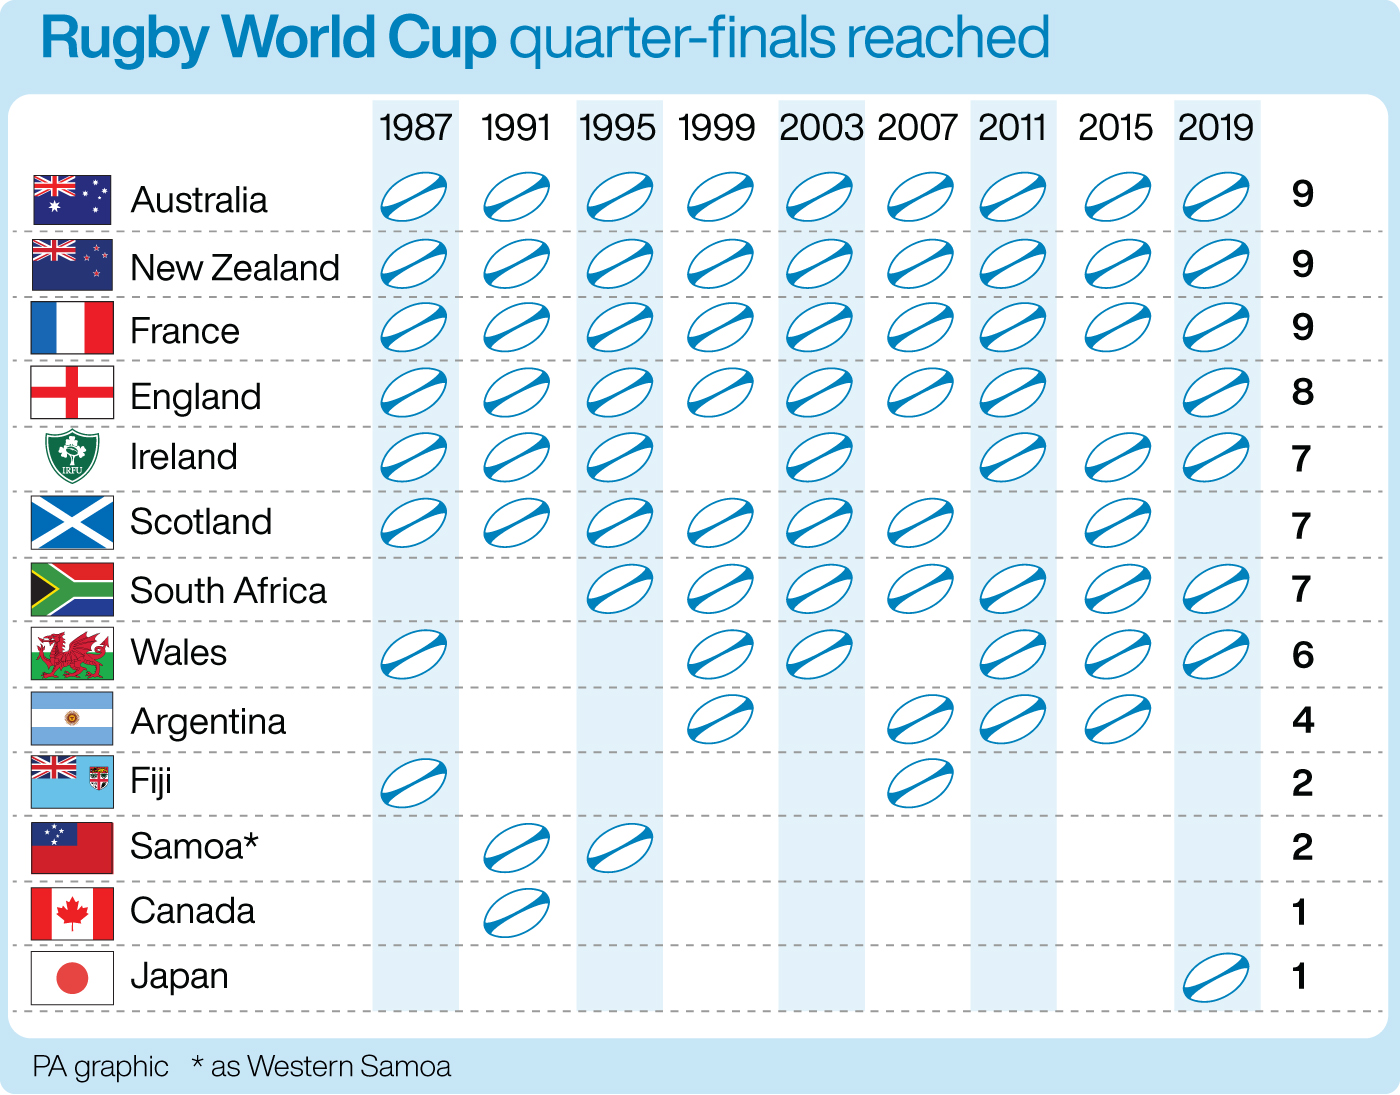 All-time Rugby World Cup quarter-finalists